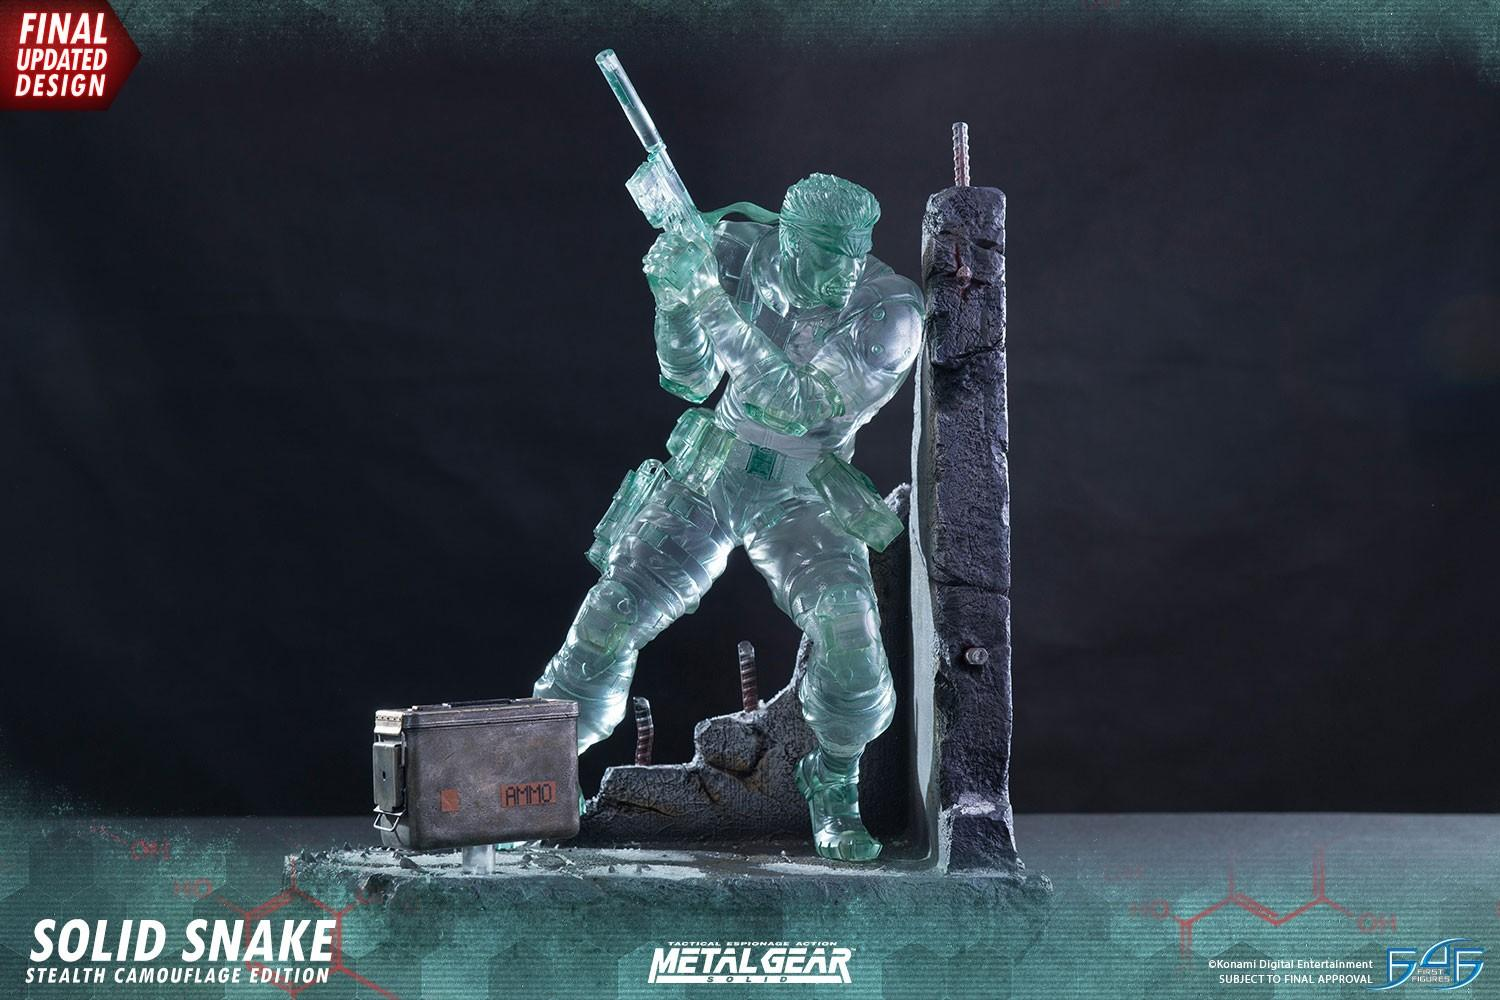 STATUA METAL GEAR SOLID SNAKE 44 CM STEALTH CAMOUFLAGE SIGNATURE EDITION